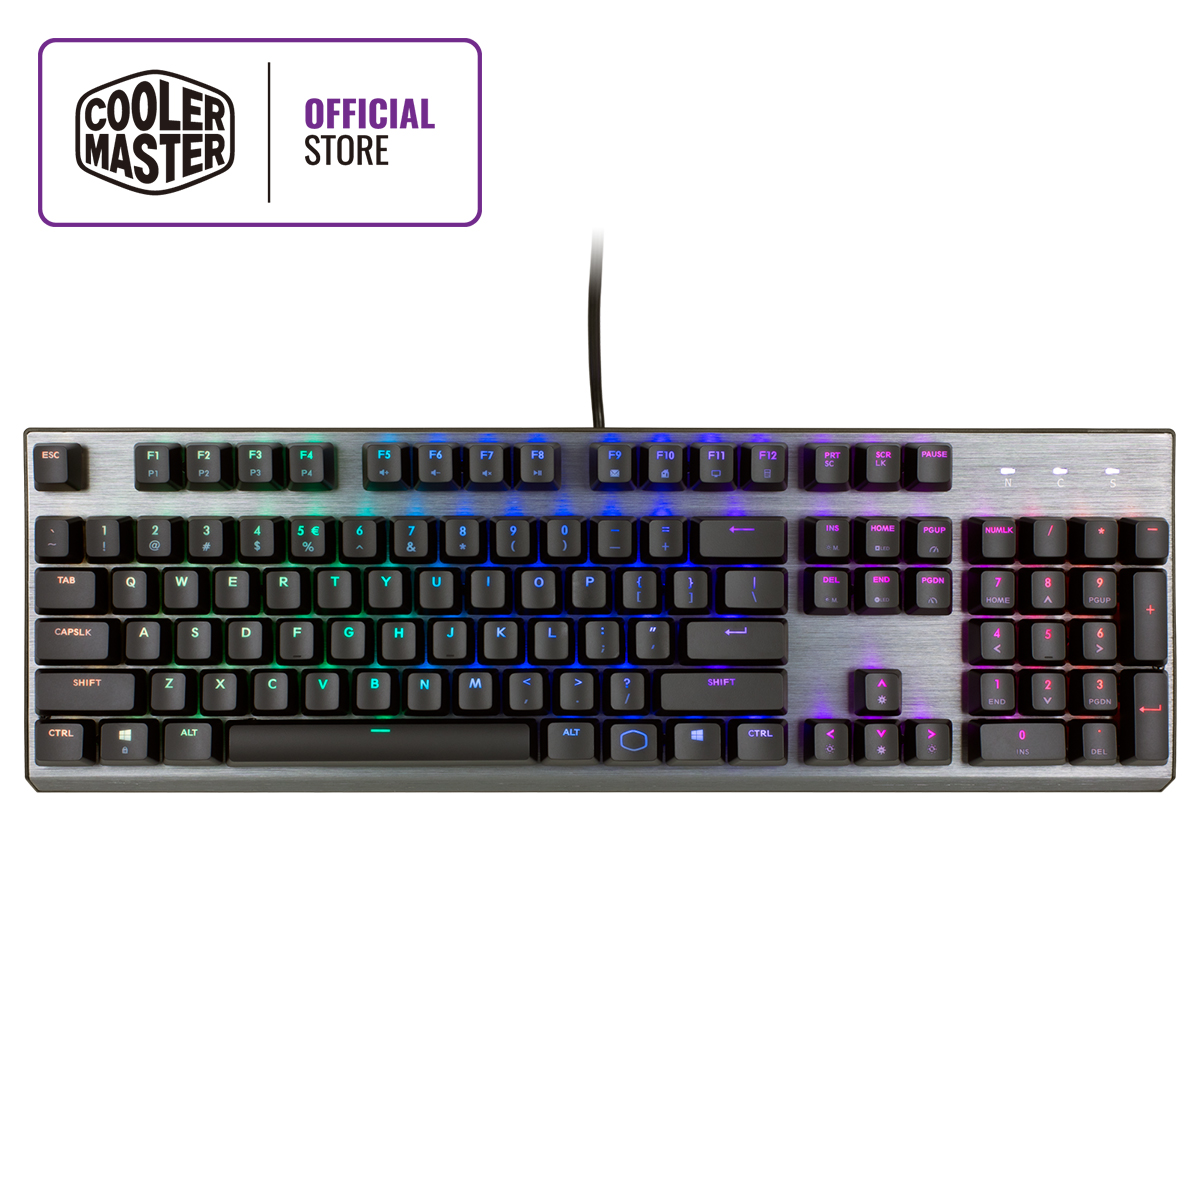 Cooler Master CK350 RGB Mechanical Gaming Keyboard with Brushed Aluminum Design (Full Layout / 108 Keys) Singapore